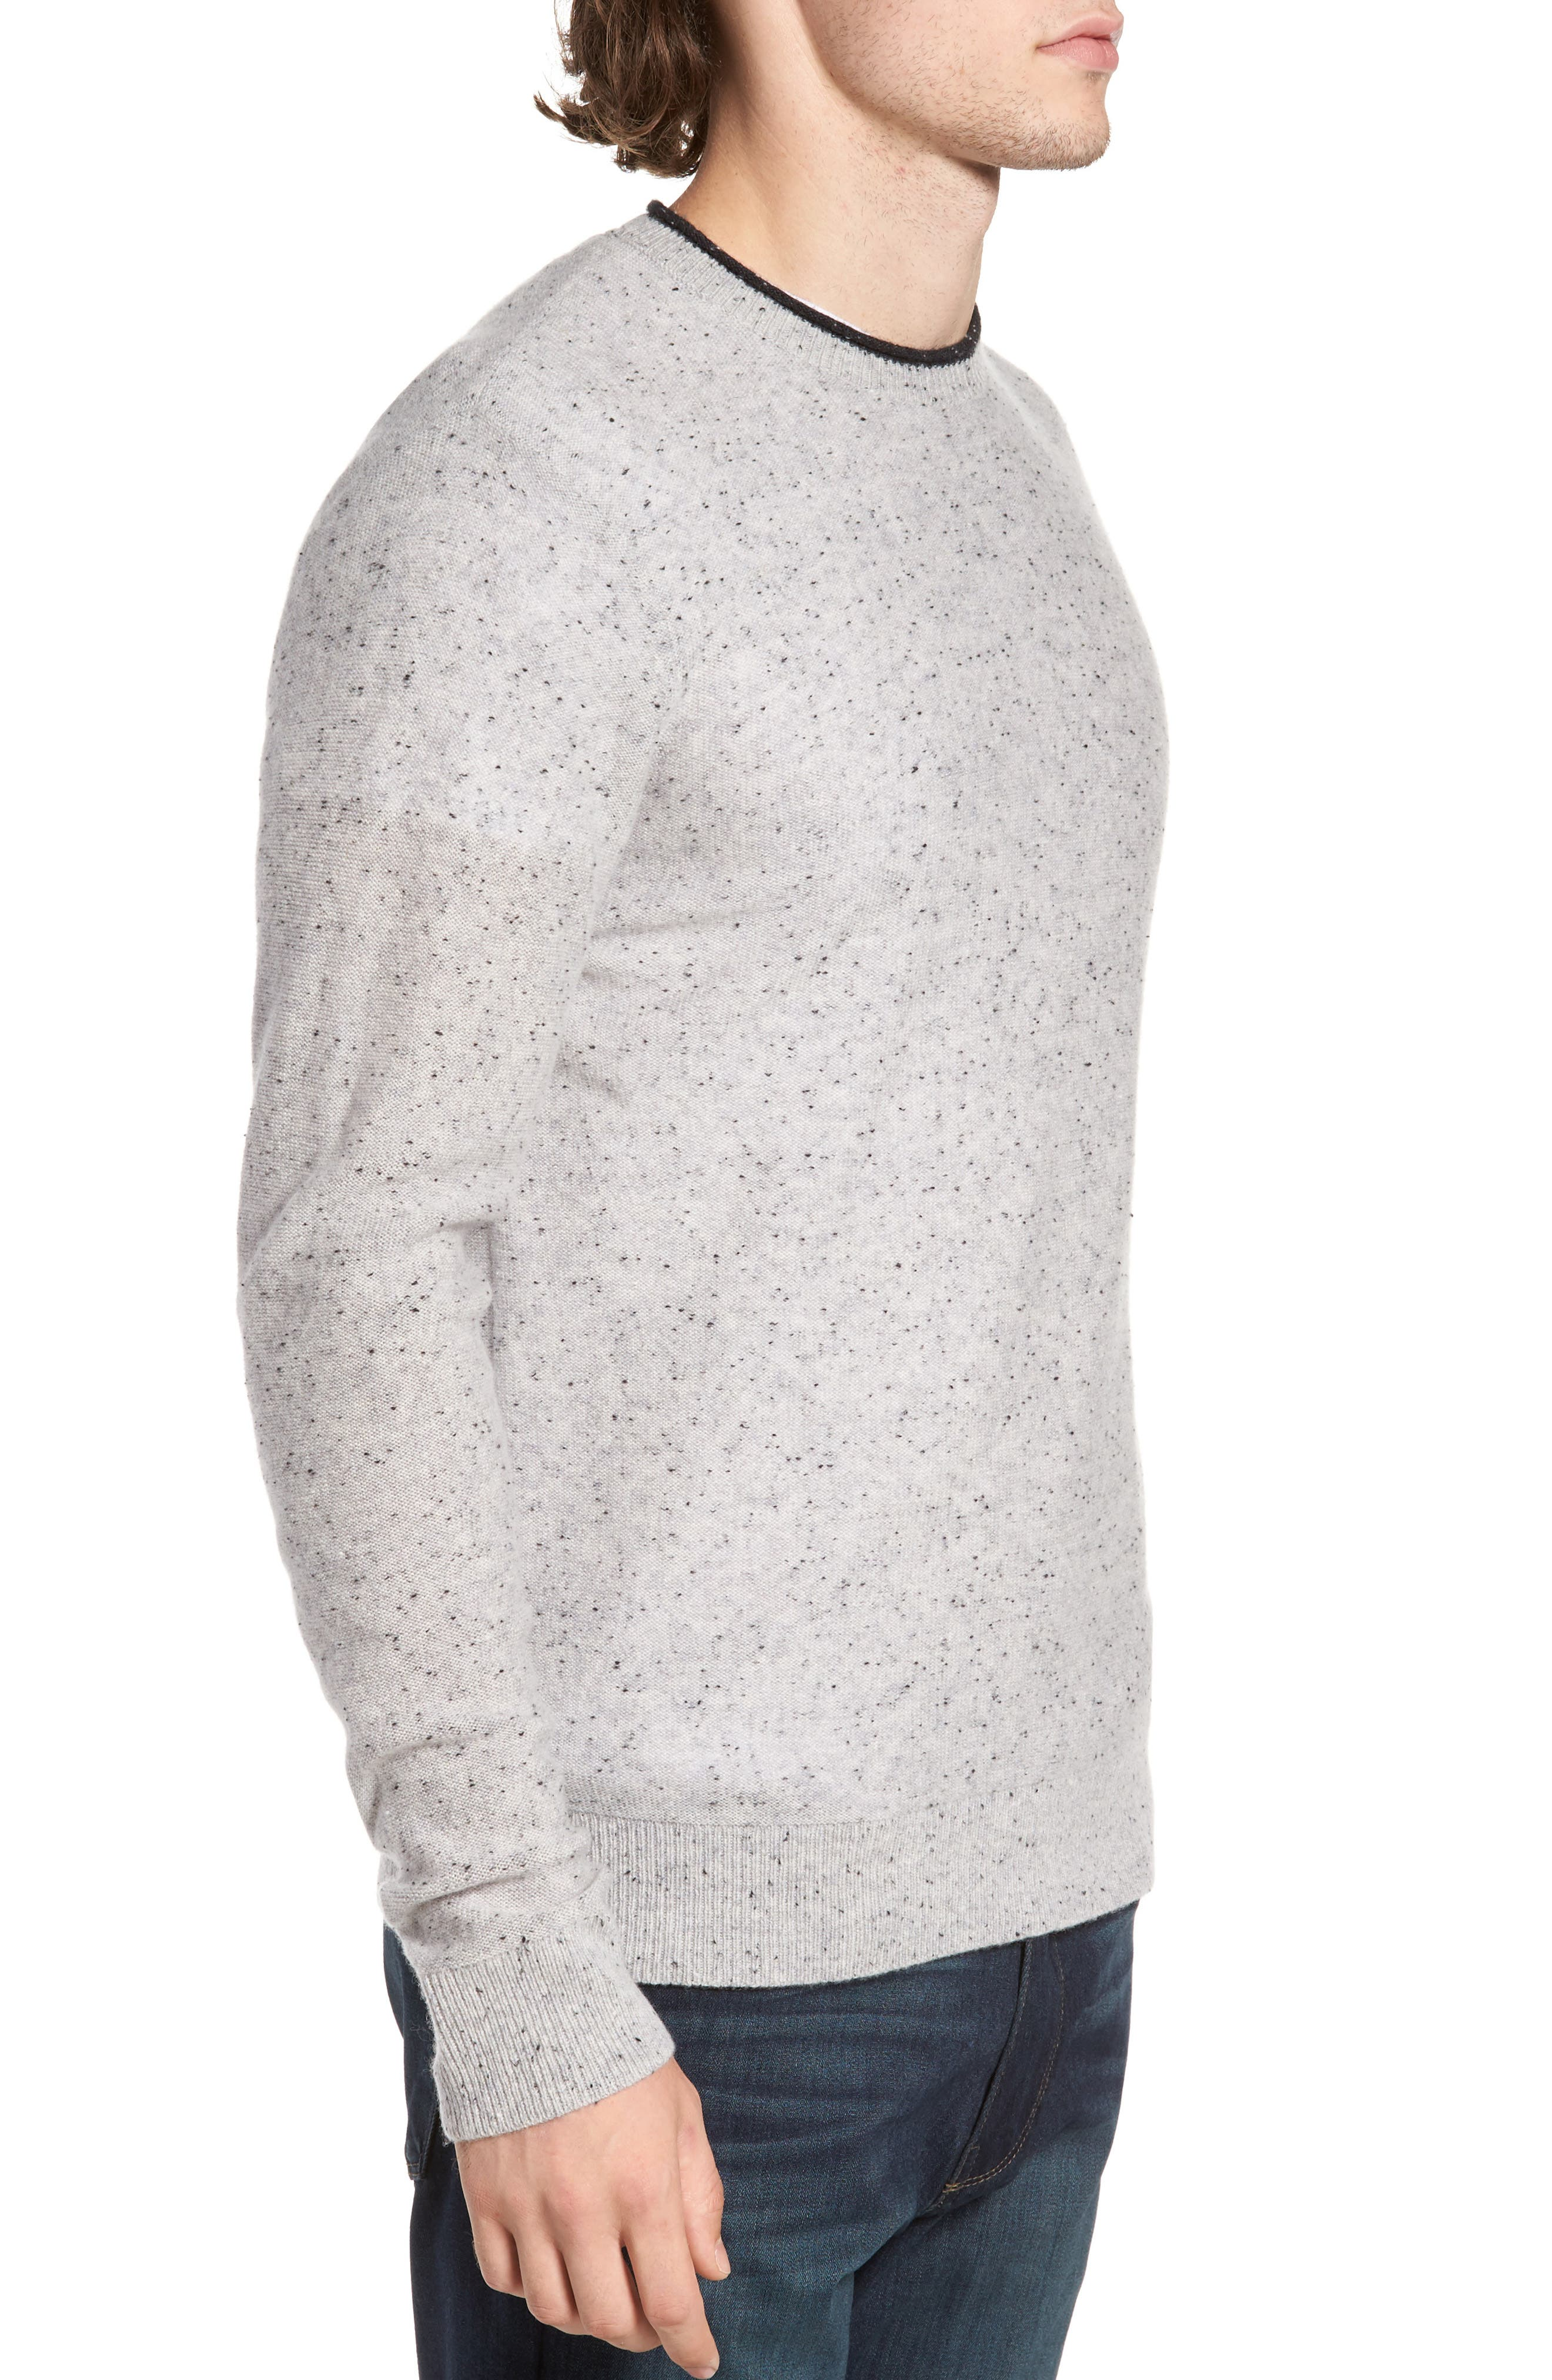 Nep Wool & Cashmere Sweater,                             Alternate thumbnail 3, color,                             020